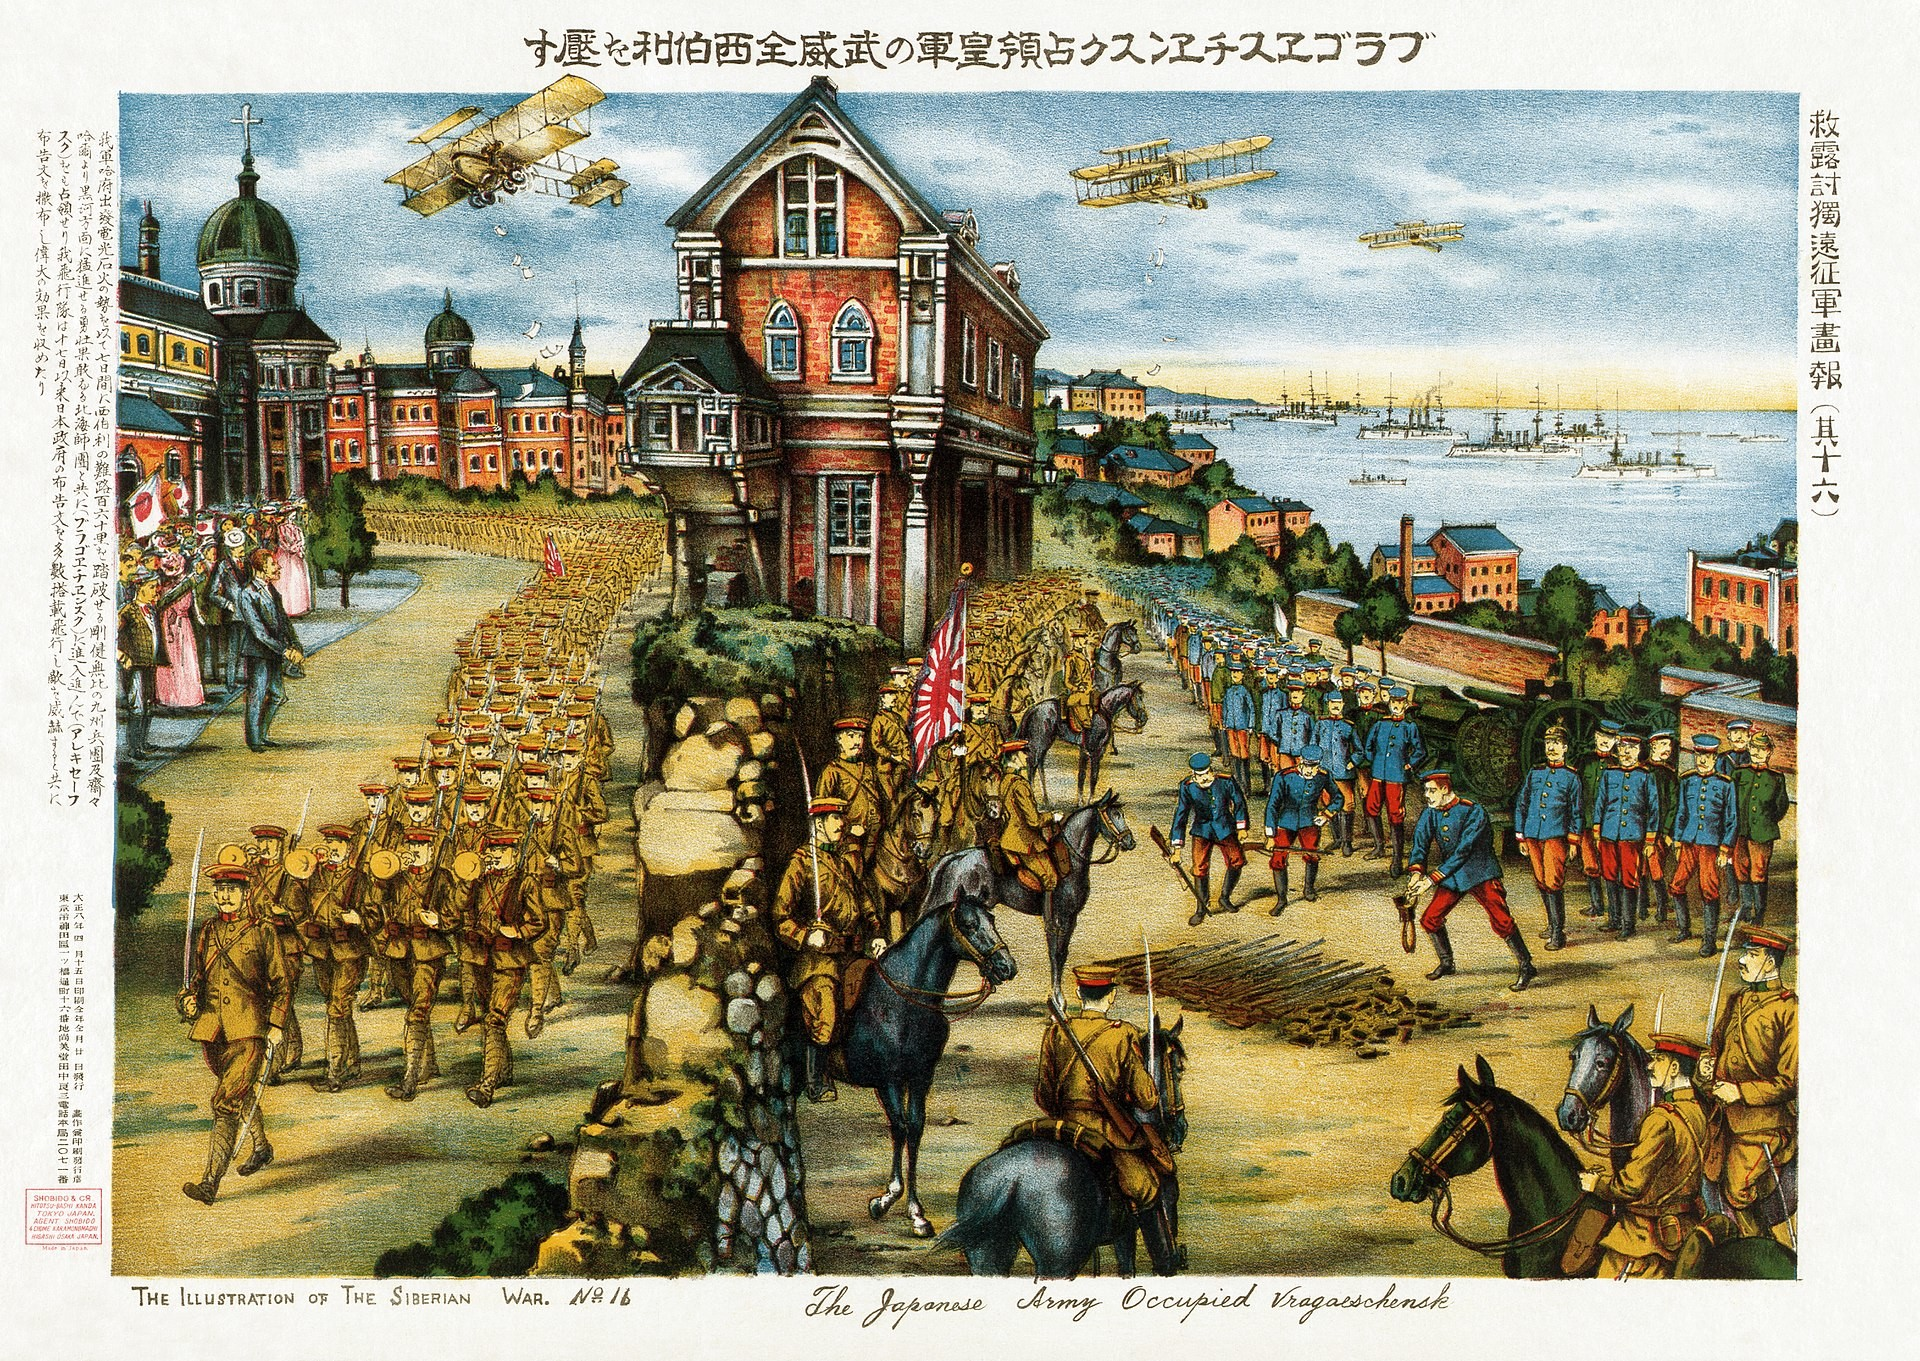 """From """"The Illustration of The Siberian War."""" This image is titled, """"No. 16. The Japanese Army Occupied Vragaeschensk."""""""